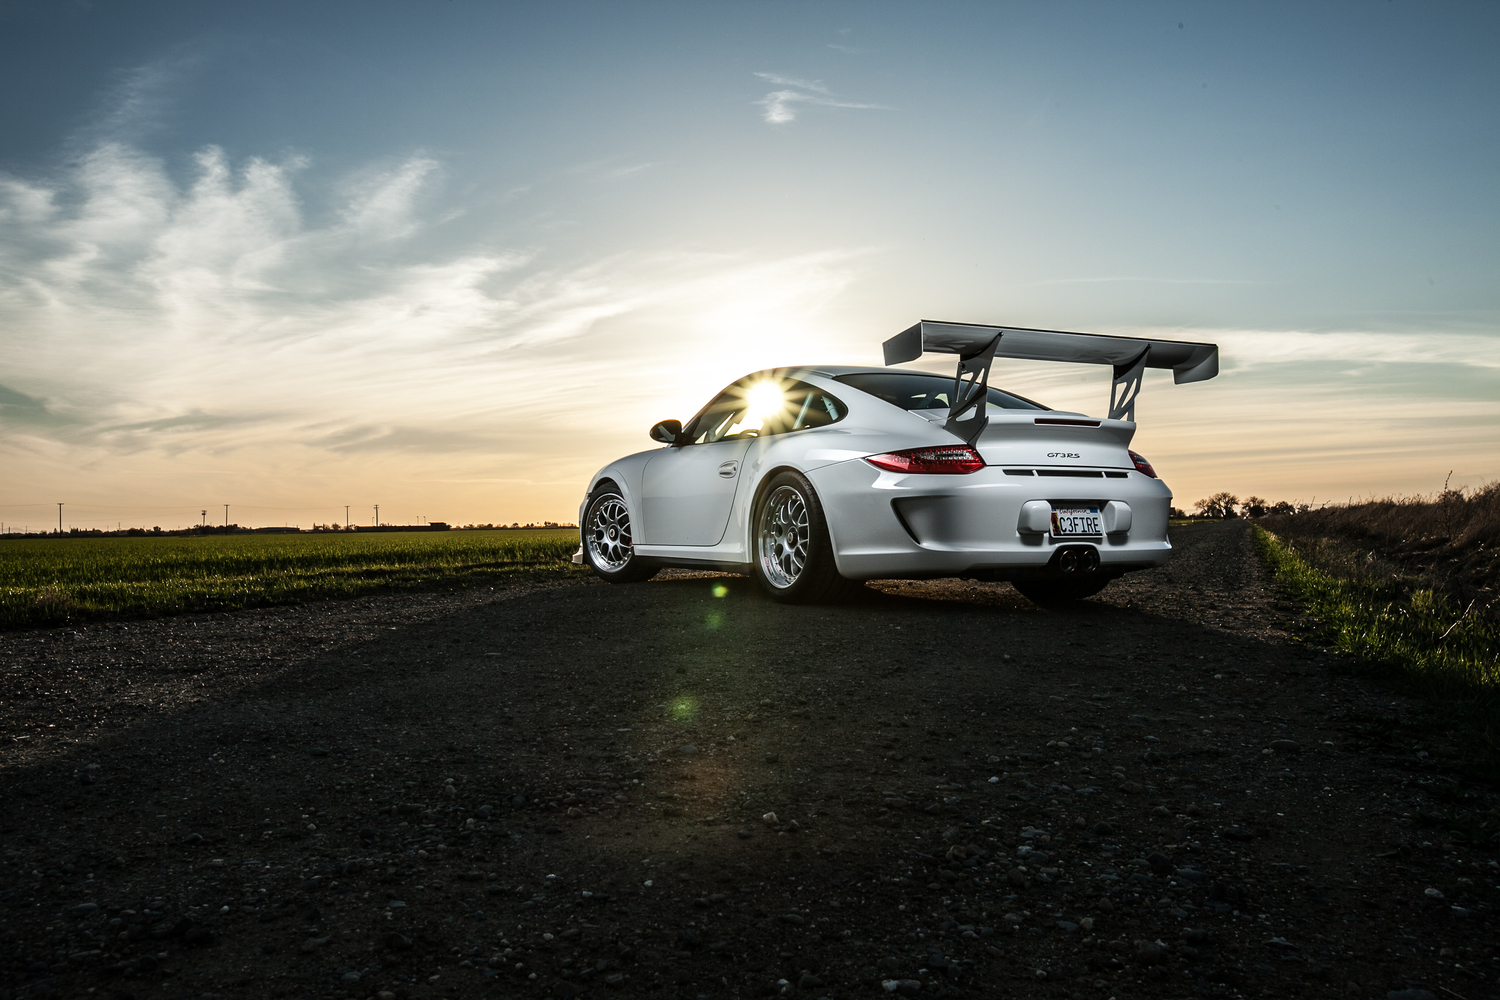 Porsche Gt3rs European Car Magazine Richard Le